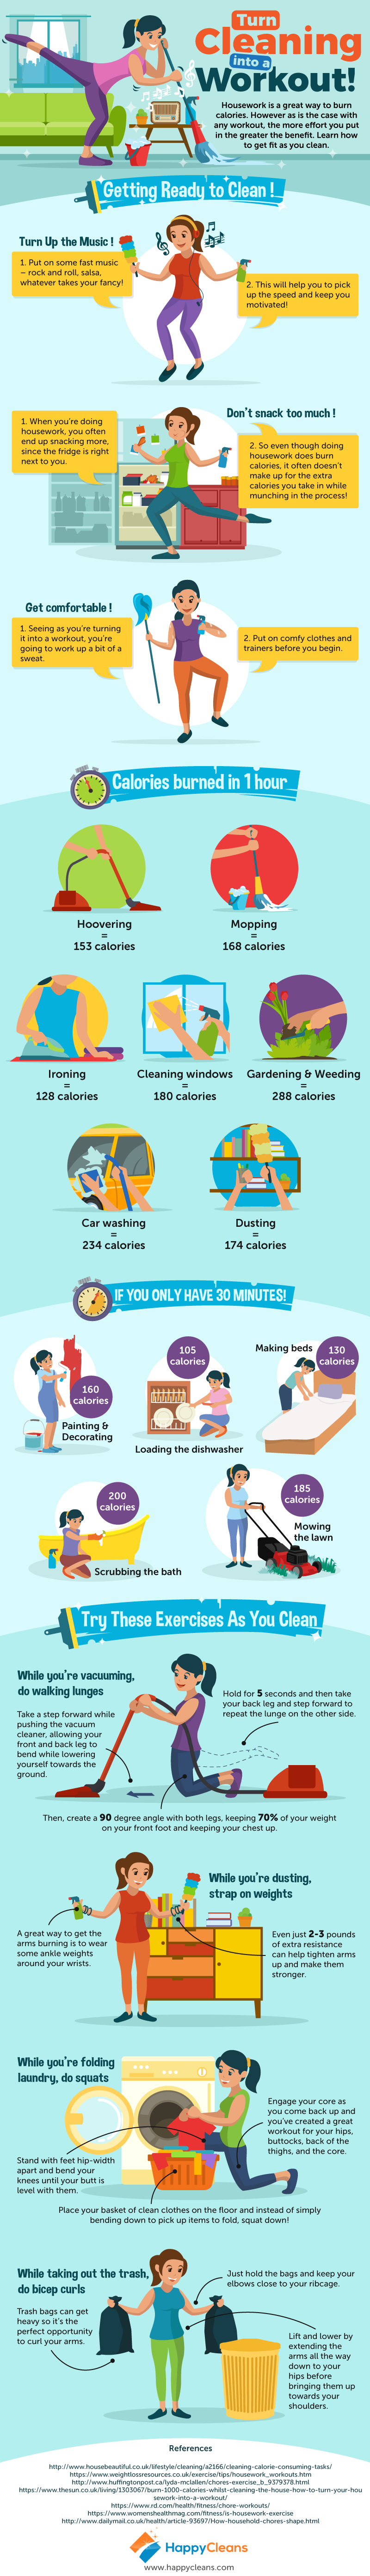 infographic about turning housework into a workout